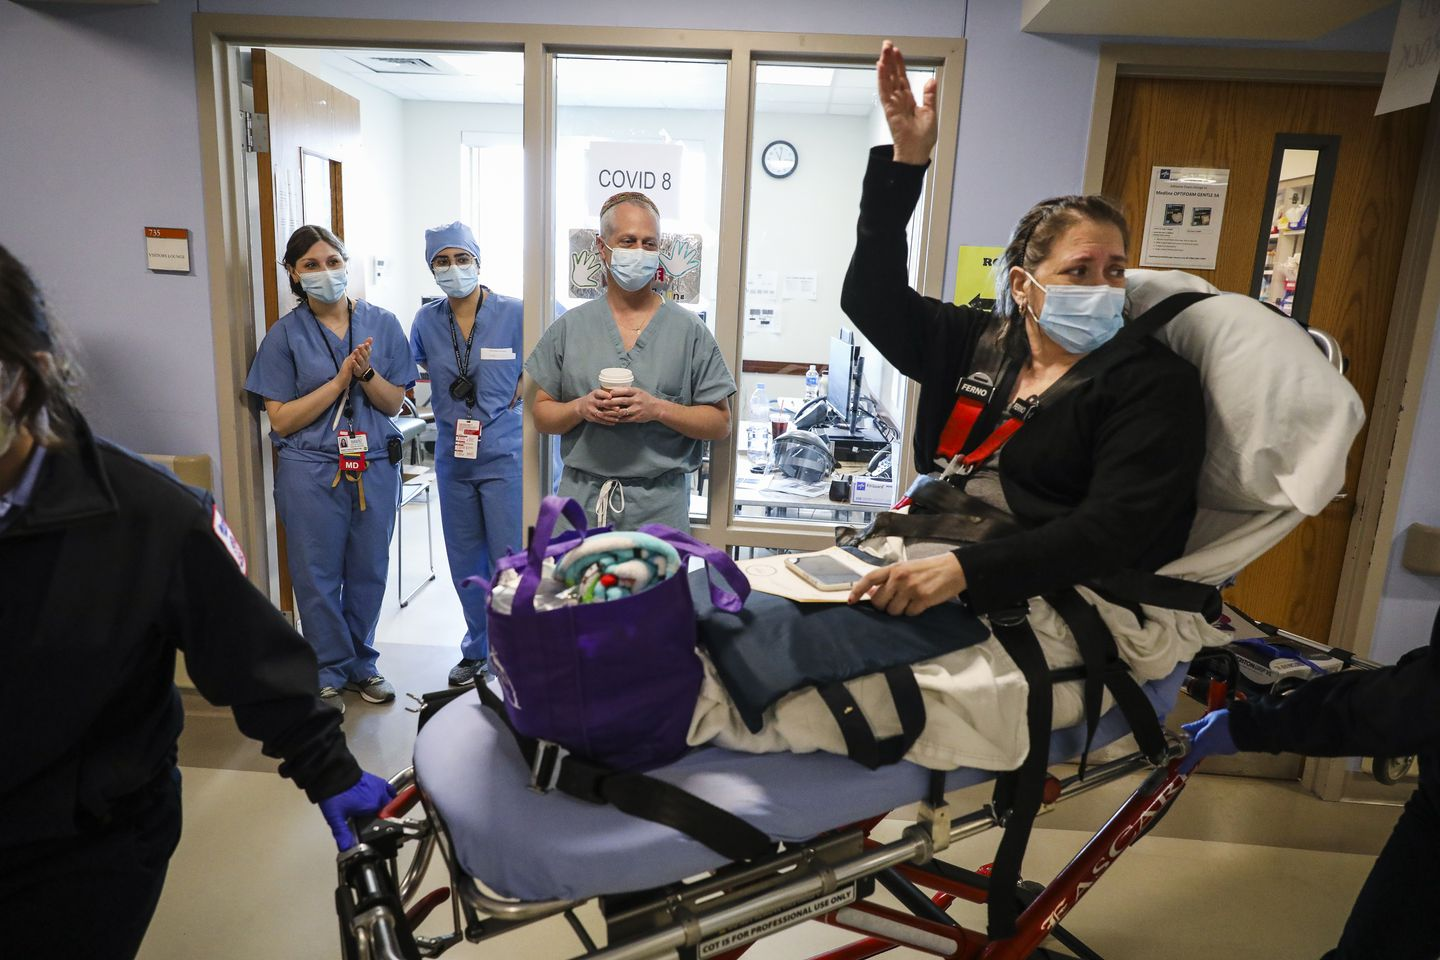 Boston Medical Center patient Candace Samayoa waved goodbye to nurses as she was being released from the hospital. Samayoa had been admitted to BMC two weeks earlier after testing positive for COVID-19.